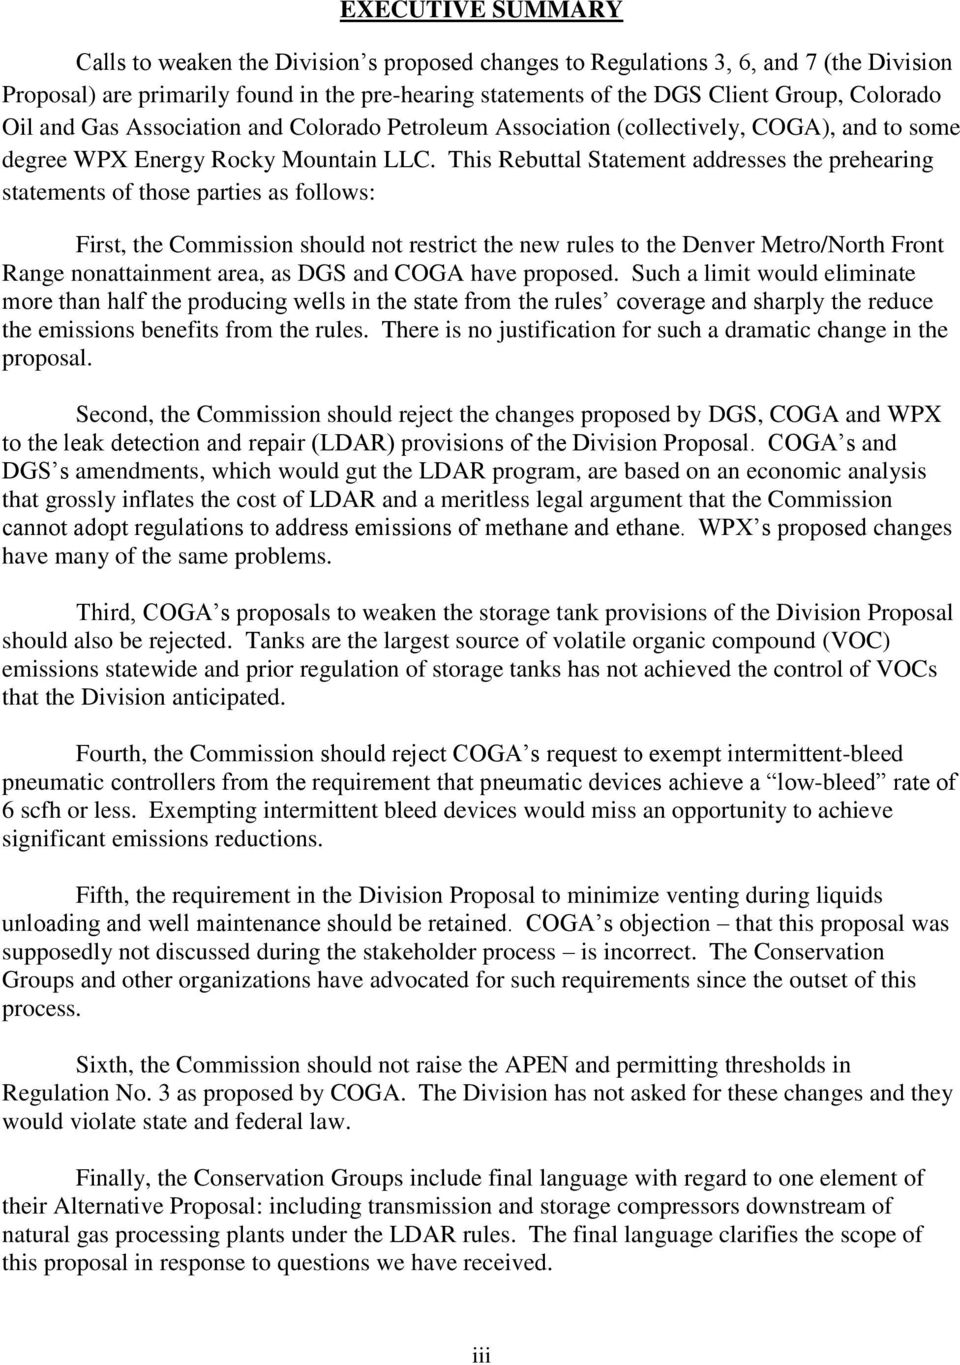 This Rebuttal Statement addresses the prehearing statements of those parties as follows: First, the Commission should not restrict the new rules to the Denver Metro/North Front Range nonattainment